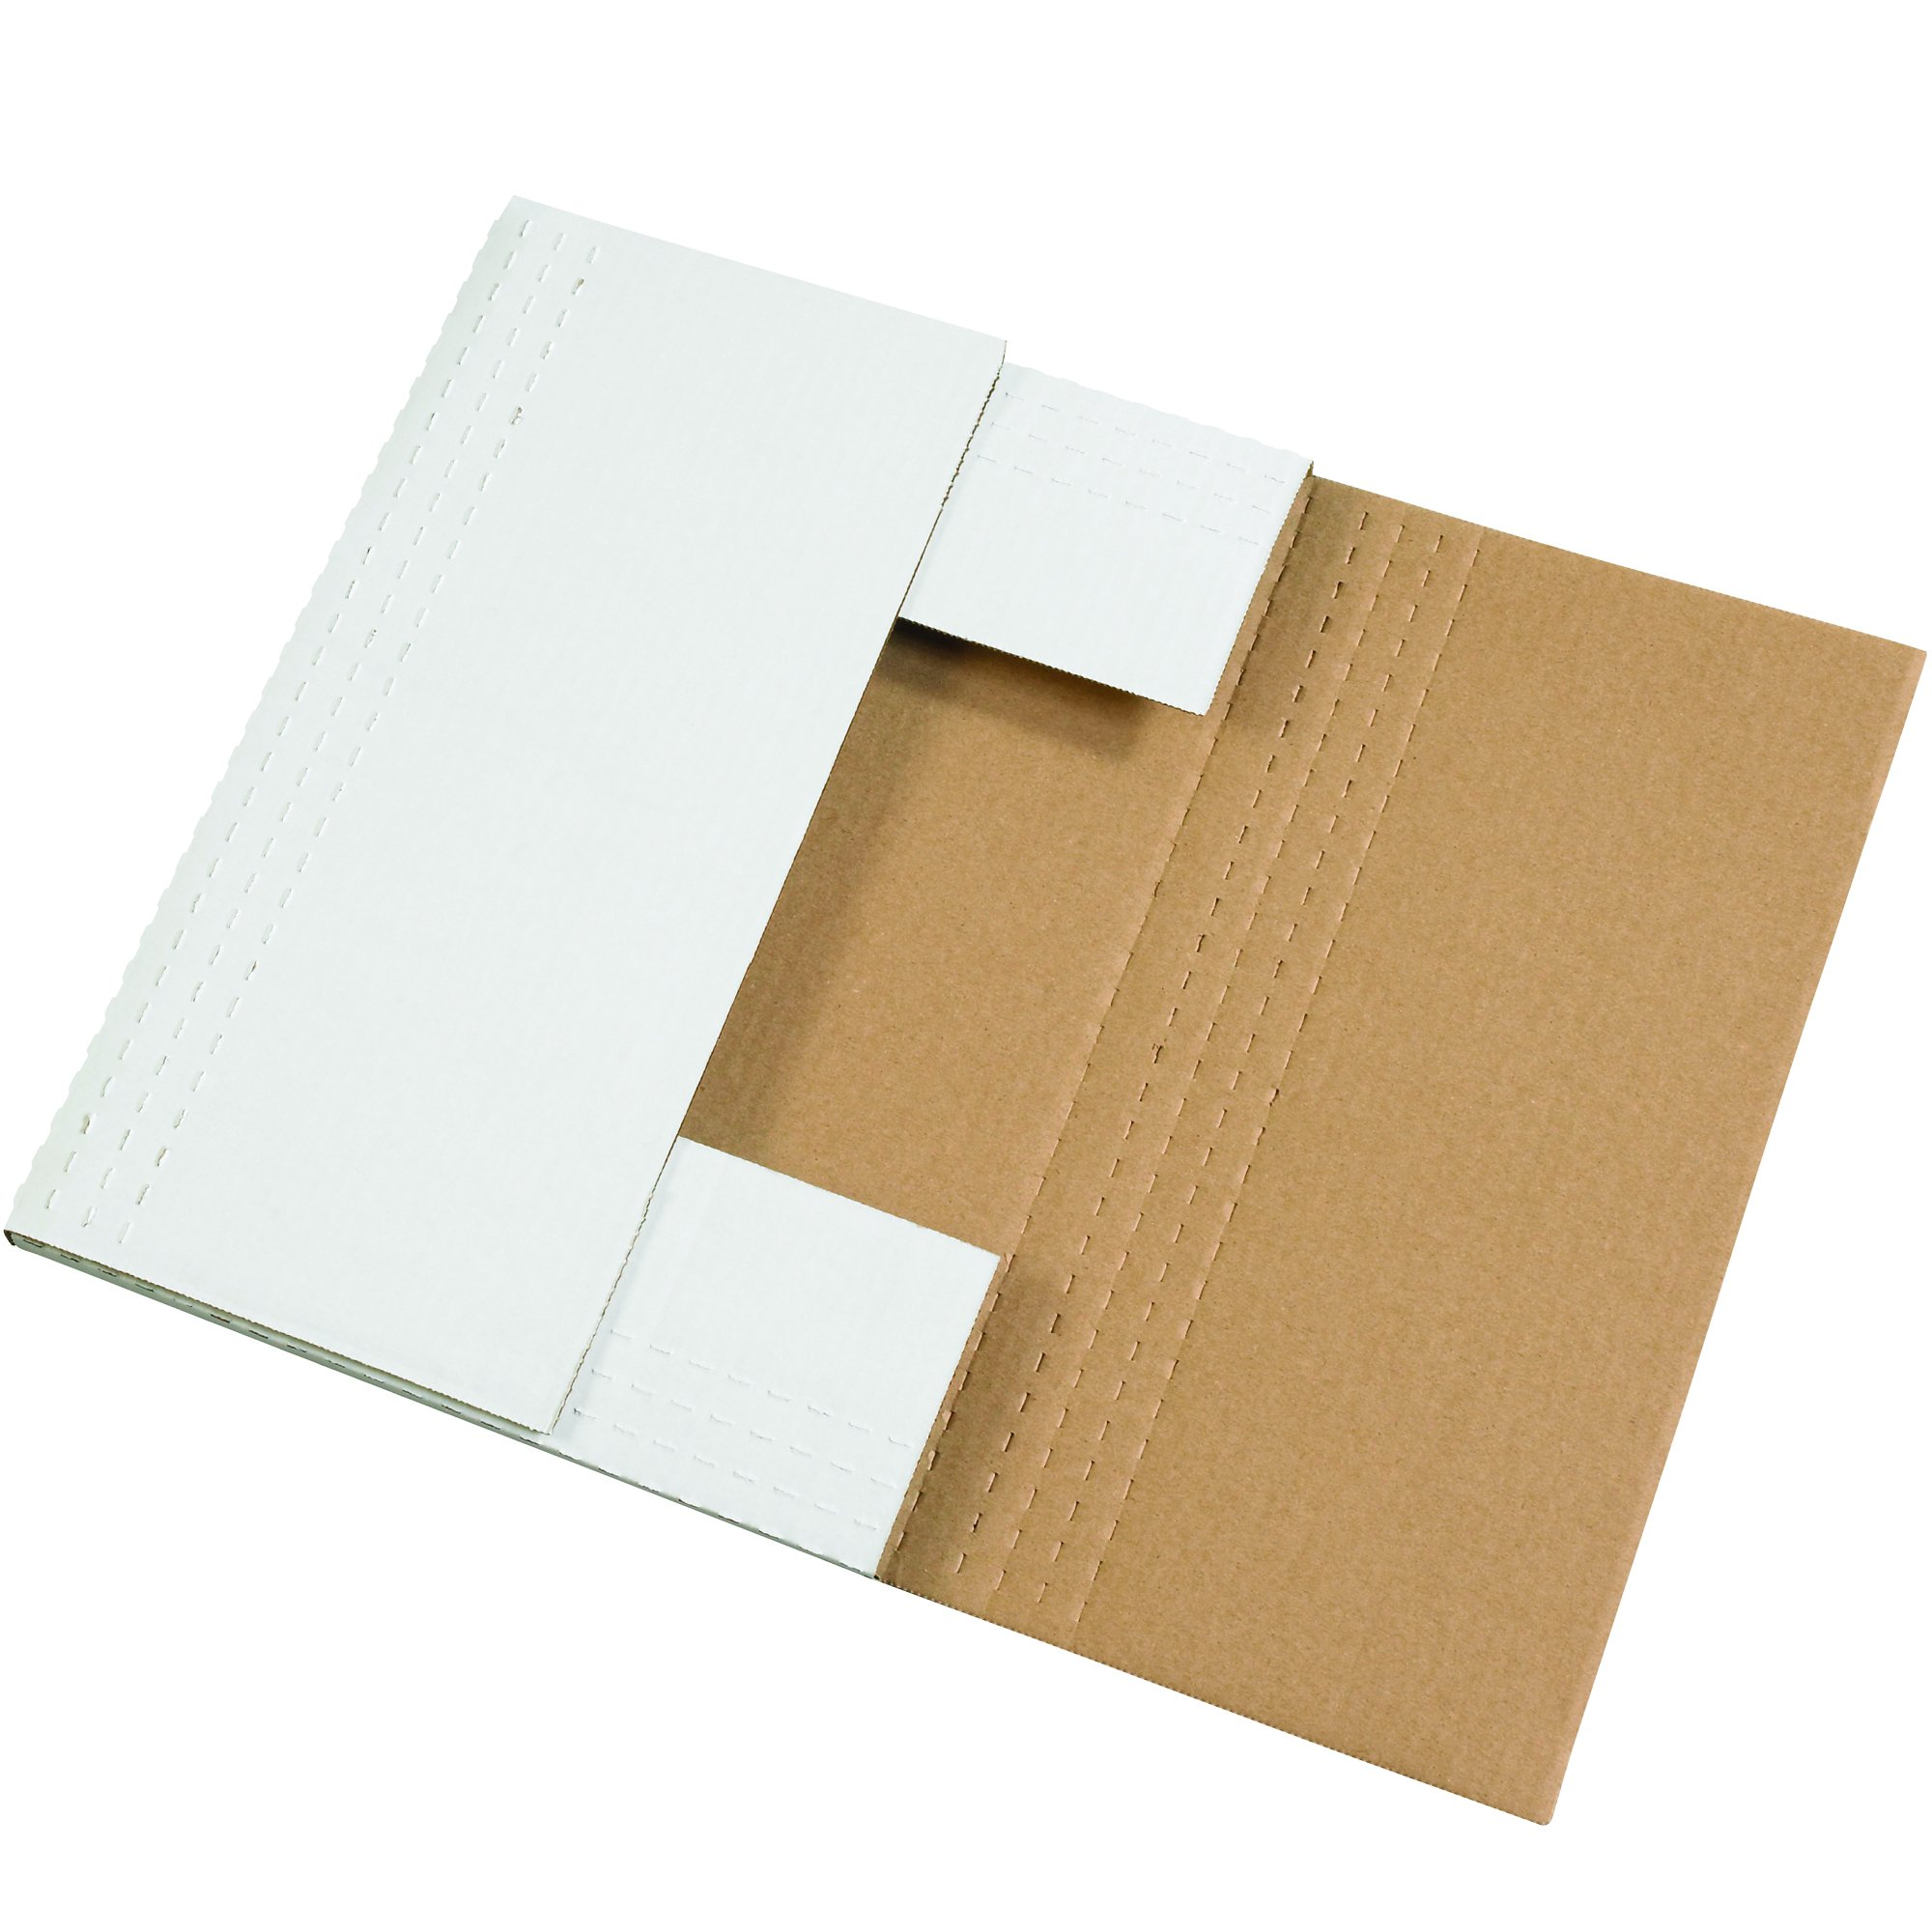 """Tape Logic TLMIBMROS Easy-Fold Mailers, 15"""" x 11 1/8"""" x 2"""", White (Pack of 50)"""